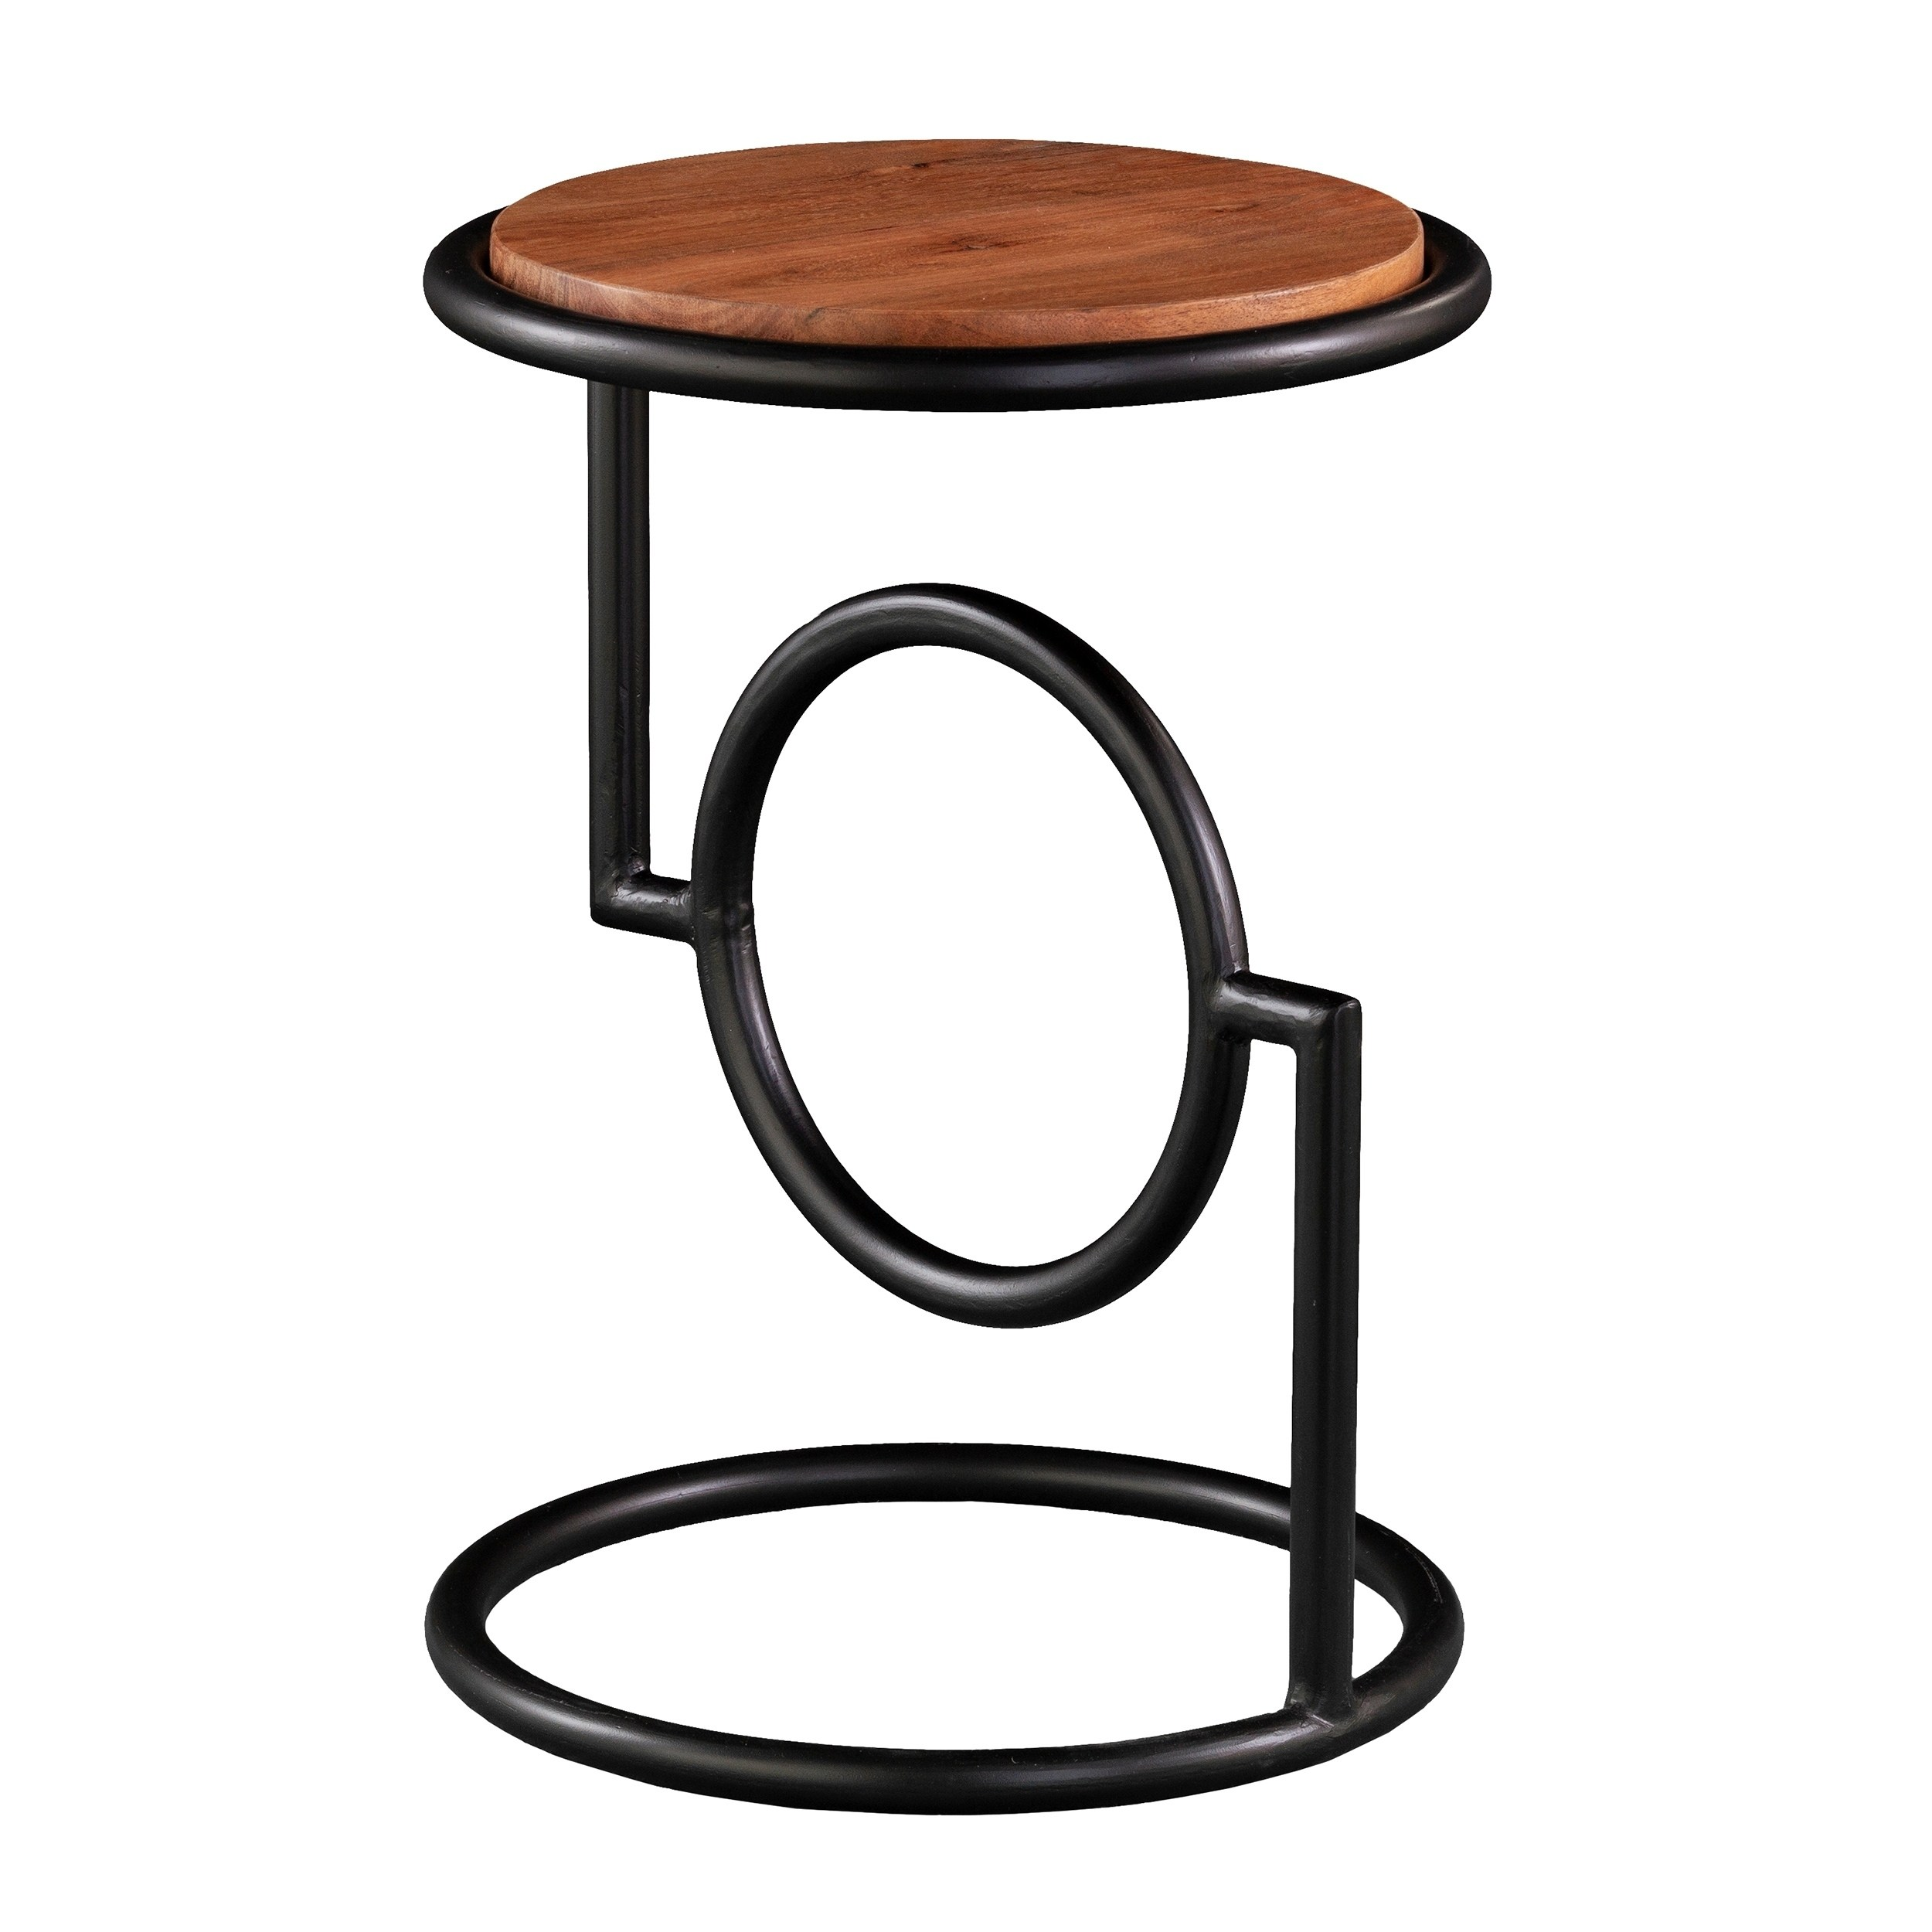 harper blvd bera round accent table mango wood top free shipping today hampton bay woodbury outdoor sideboards and buffets market umbrella adjustable height side iron company home